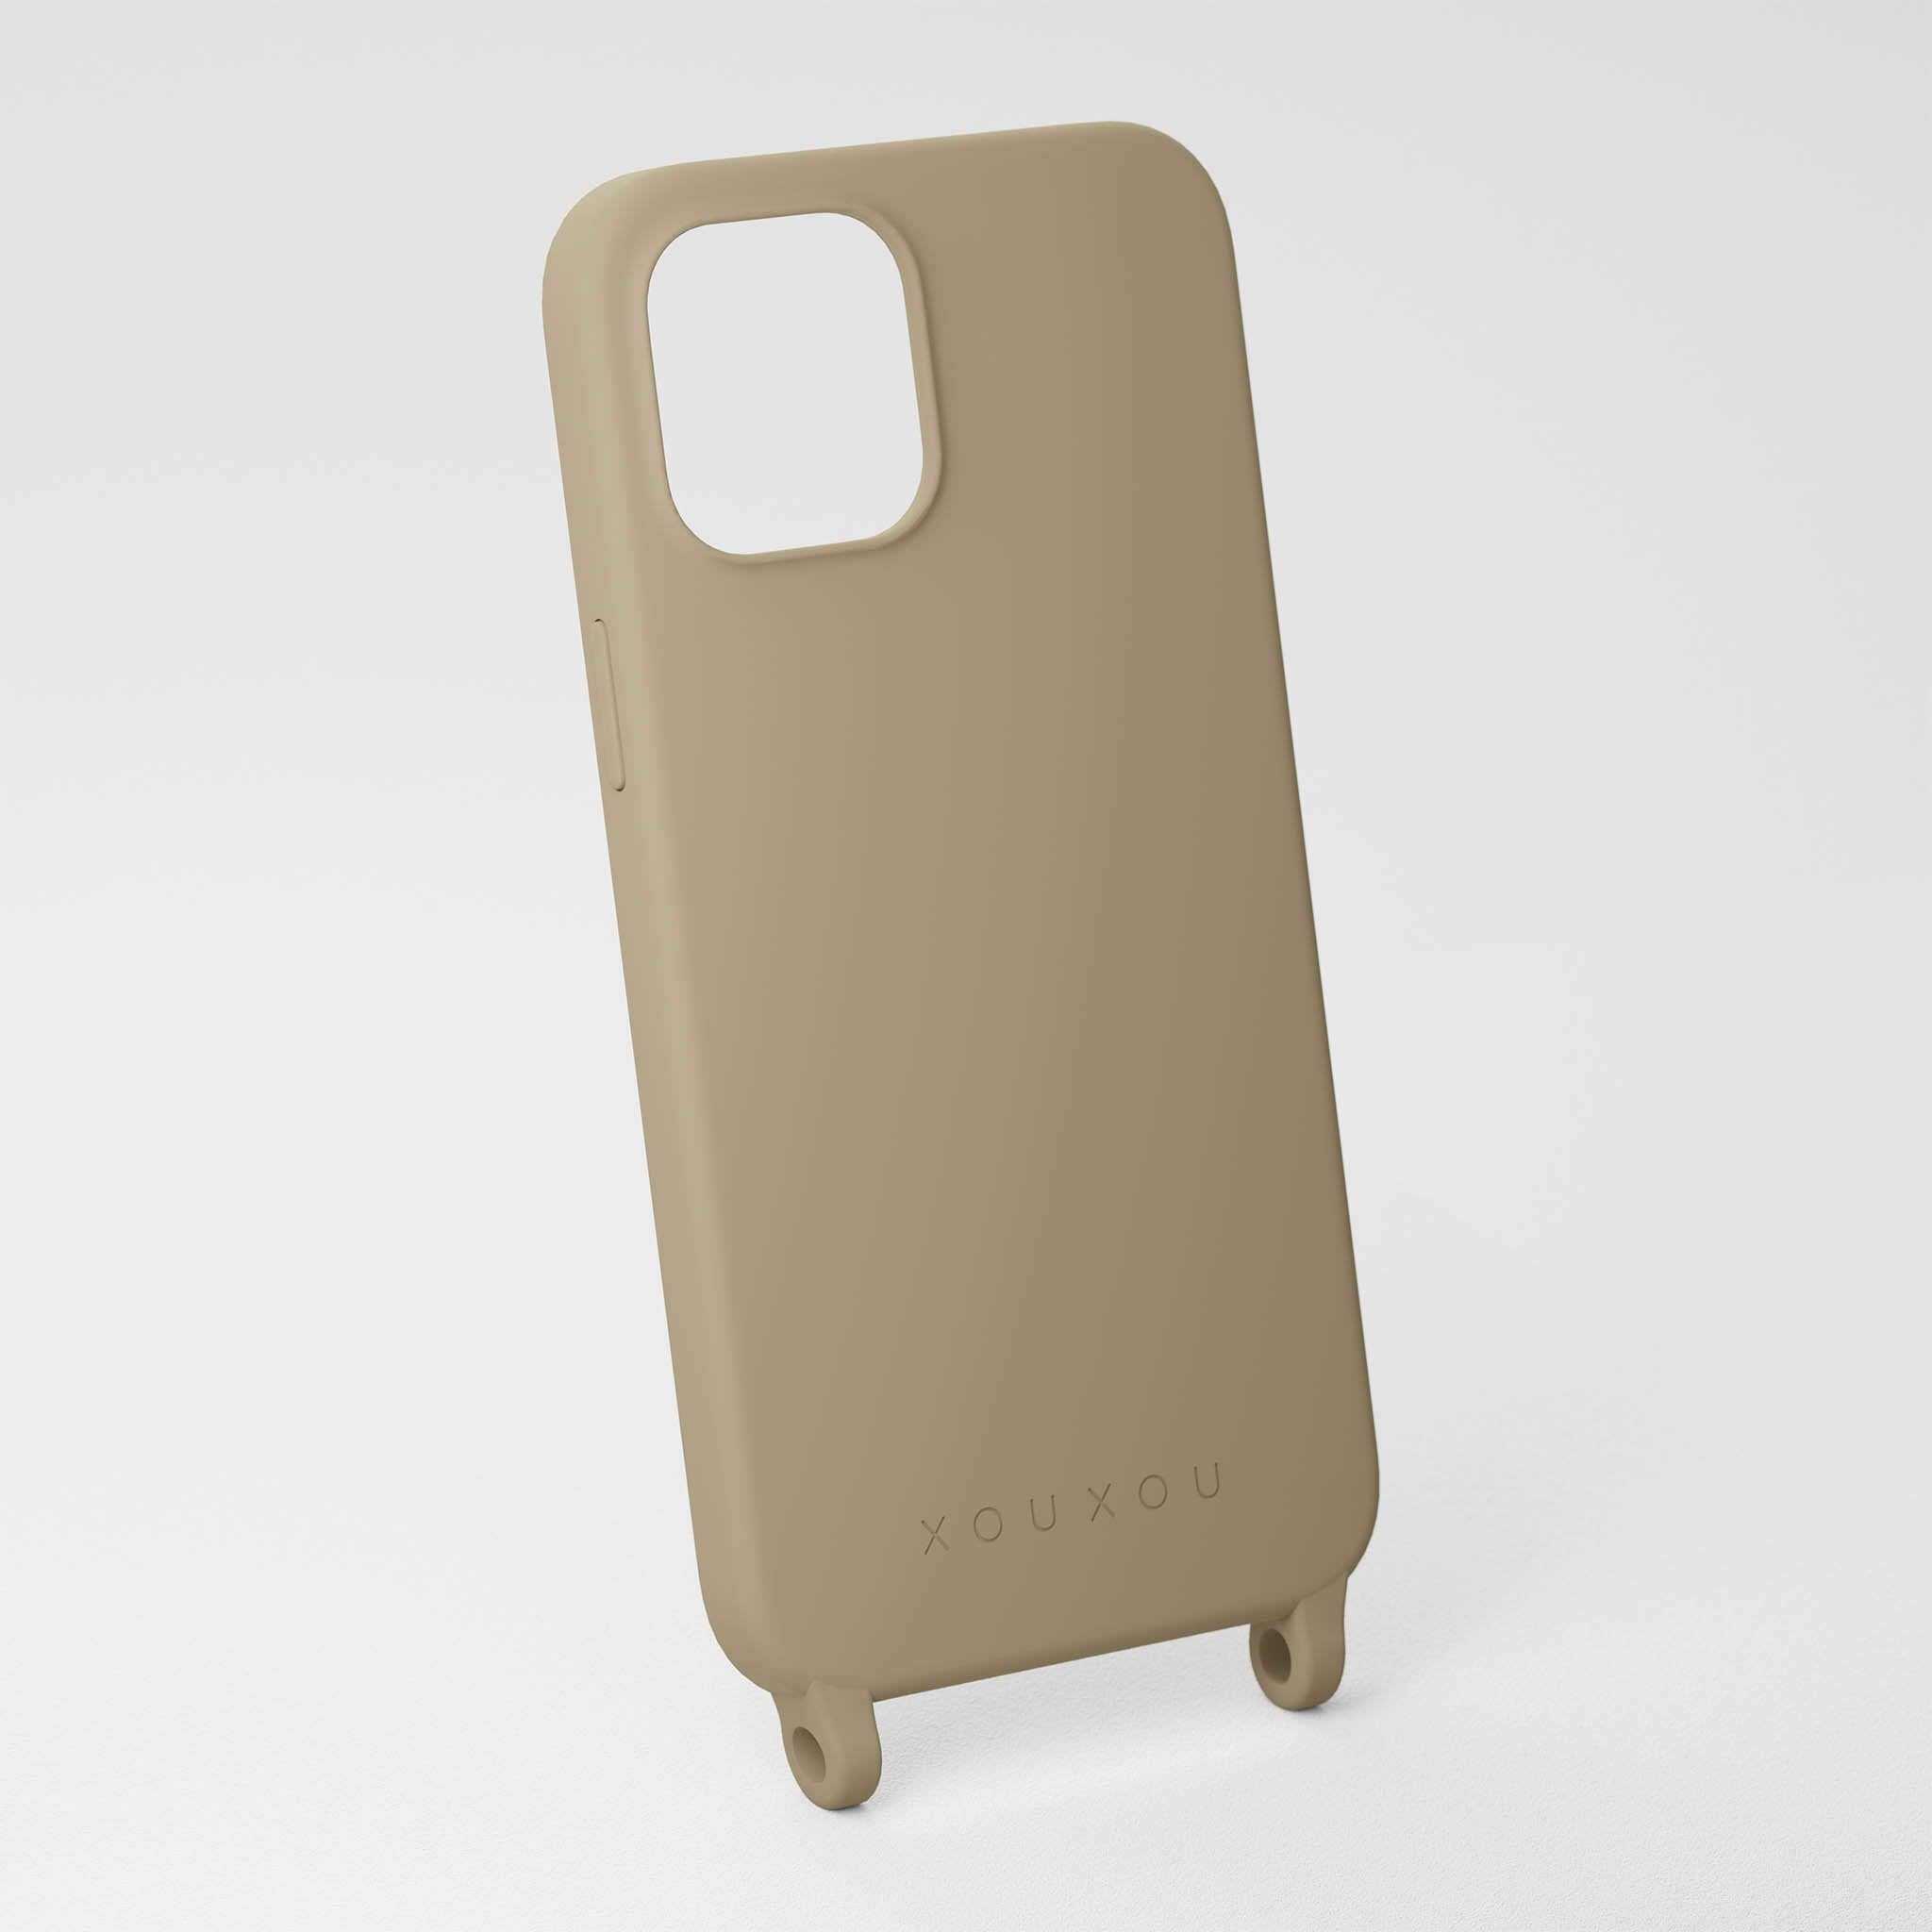 Taupe Gray silicone phone case by XOUXOU